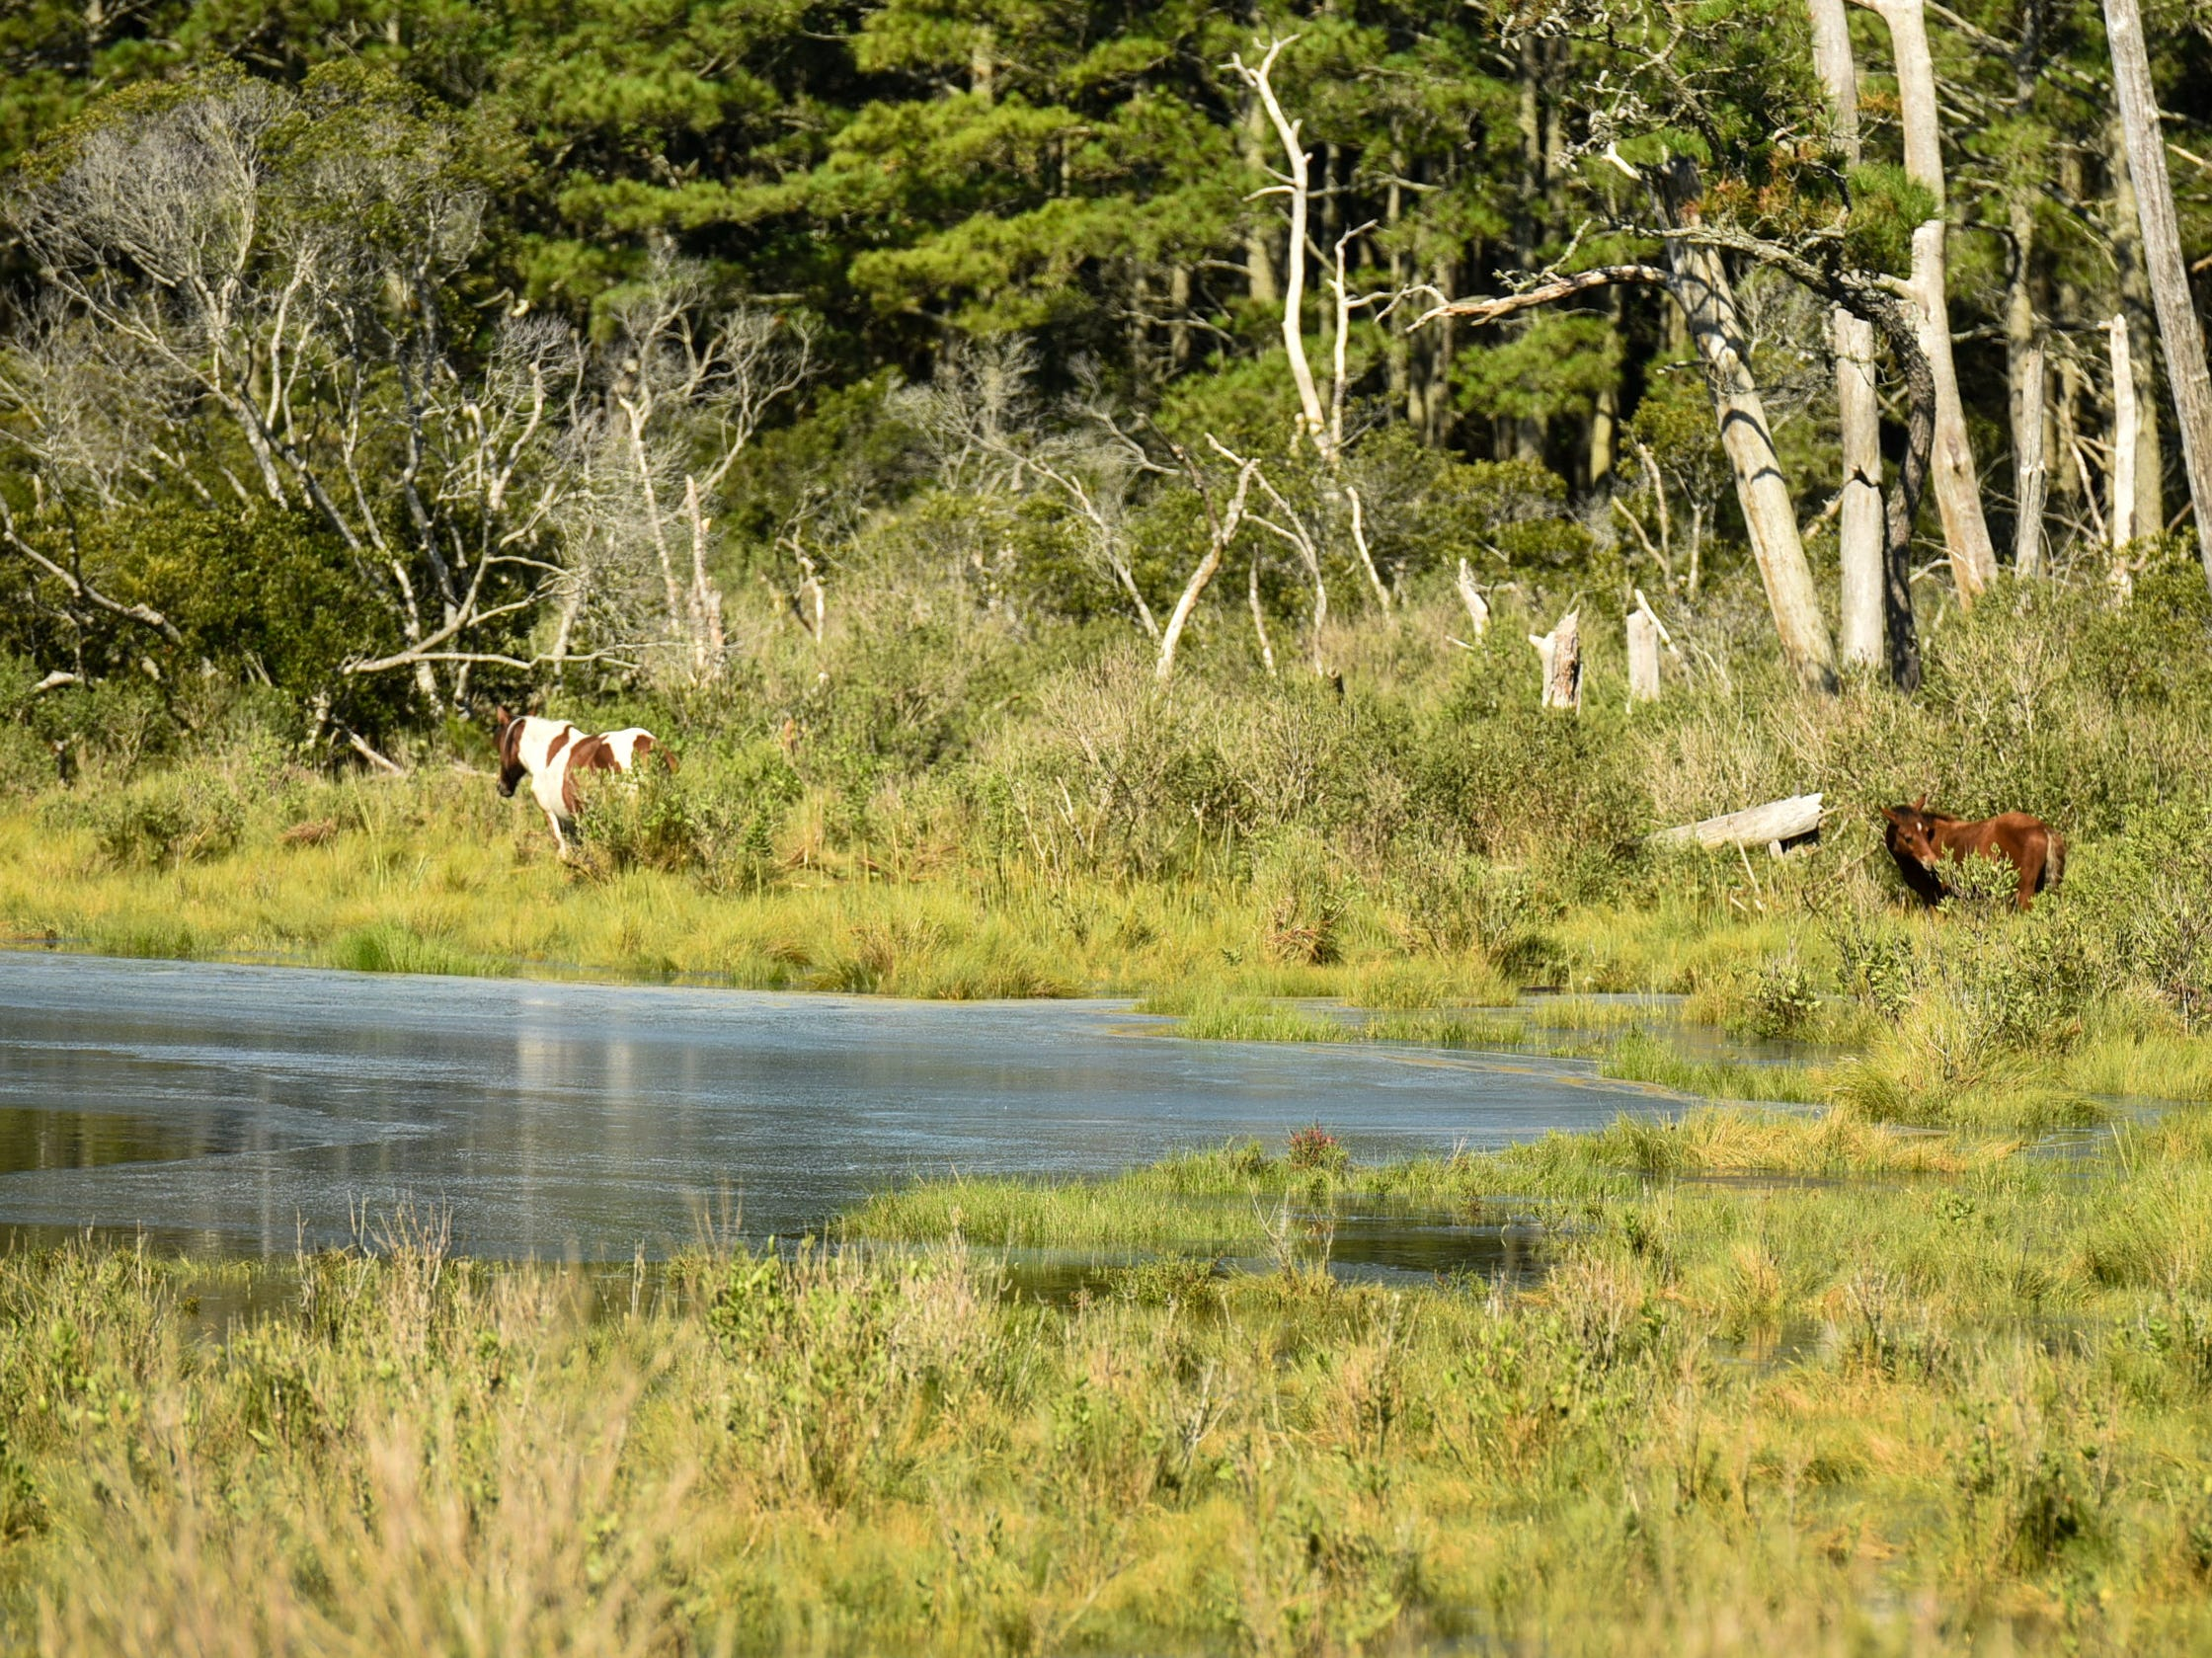 Chincoteague ponies grazed on Assateague Island on Tuesday, Sept. 11. The island is part of the state's zone A evacuation that was issued in advance of Hurricane Florence, but local officials have not asked residents to leave yet.